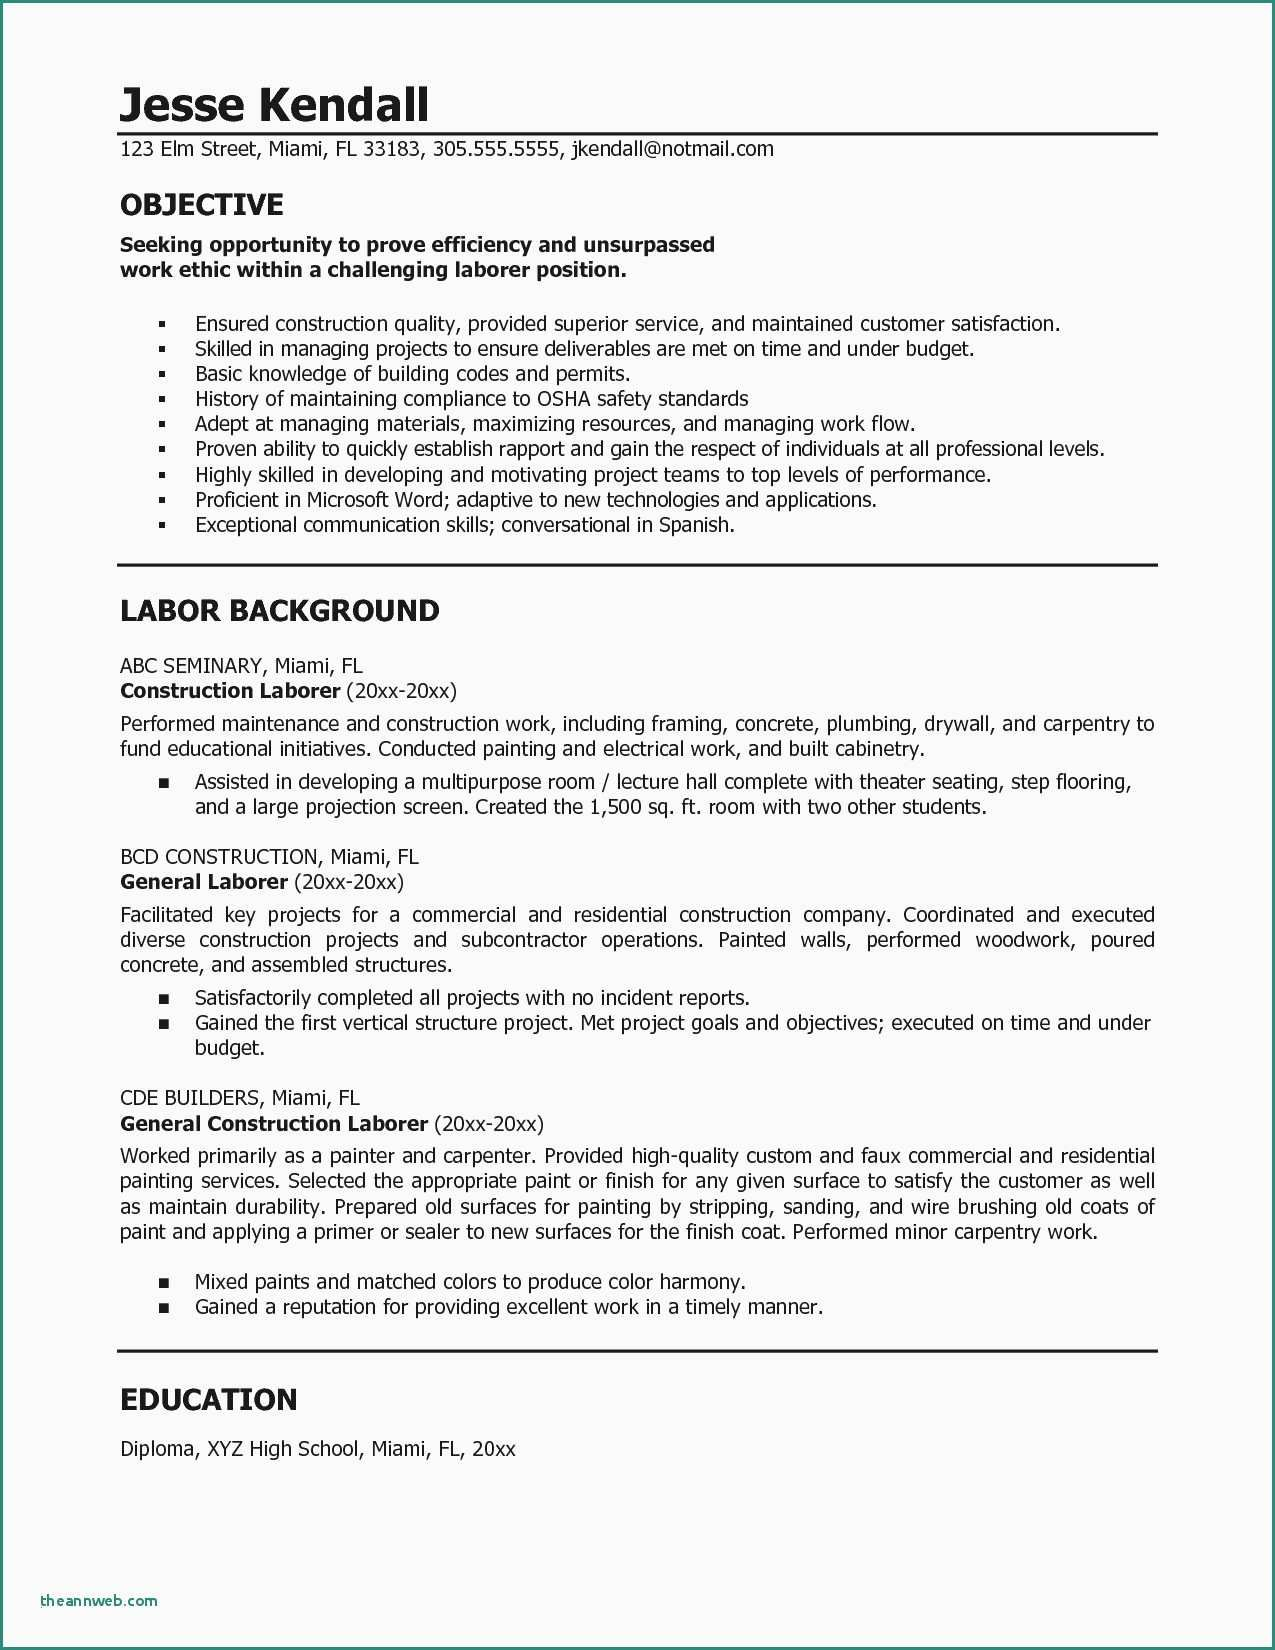 carpenter job description for resume best of admirably graph self em objective statement Resume Carpenter Job Description For Resume